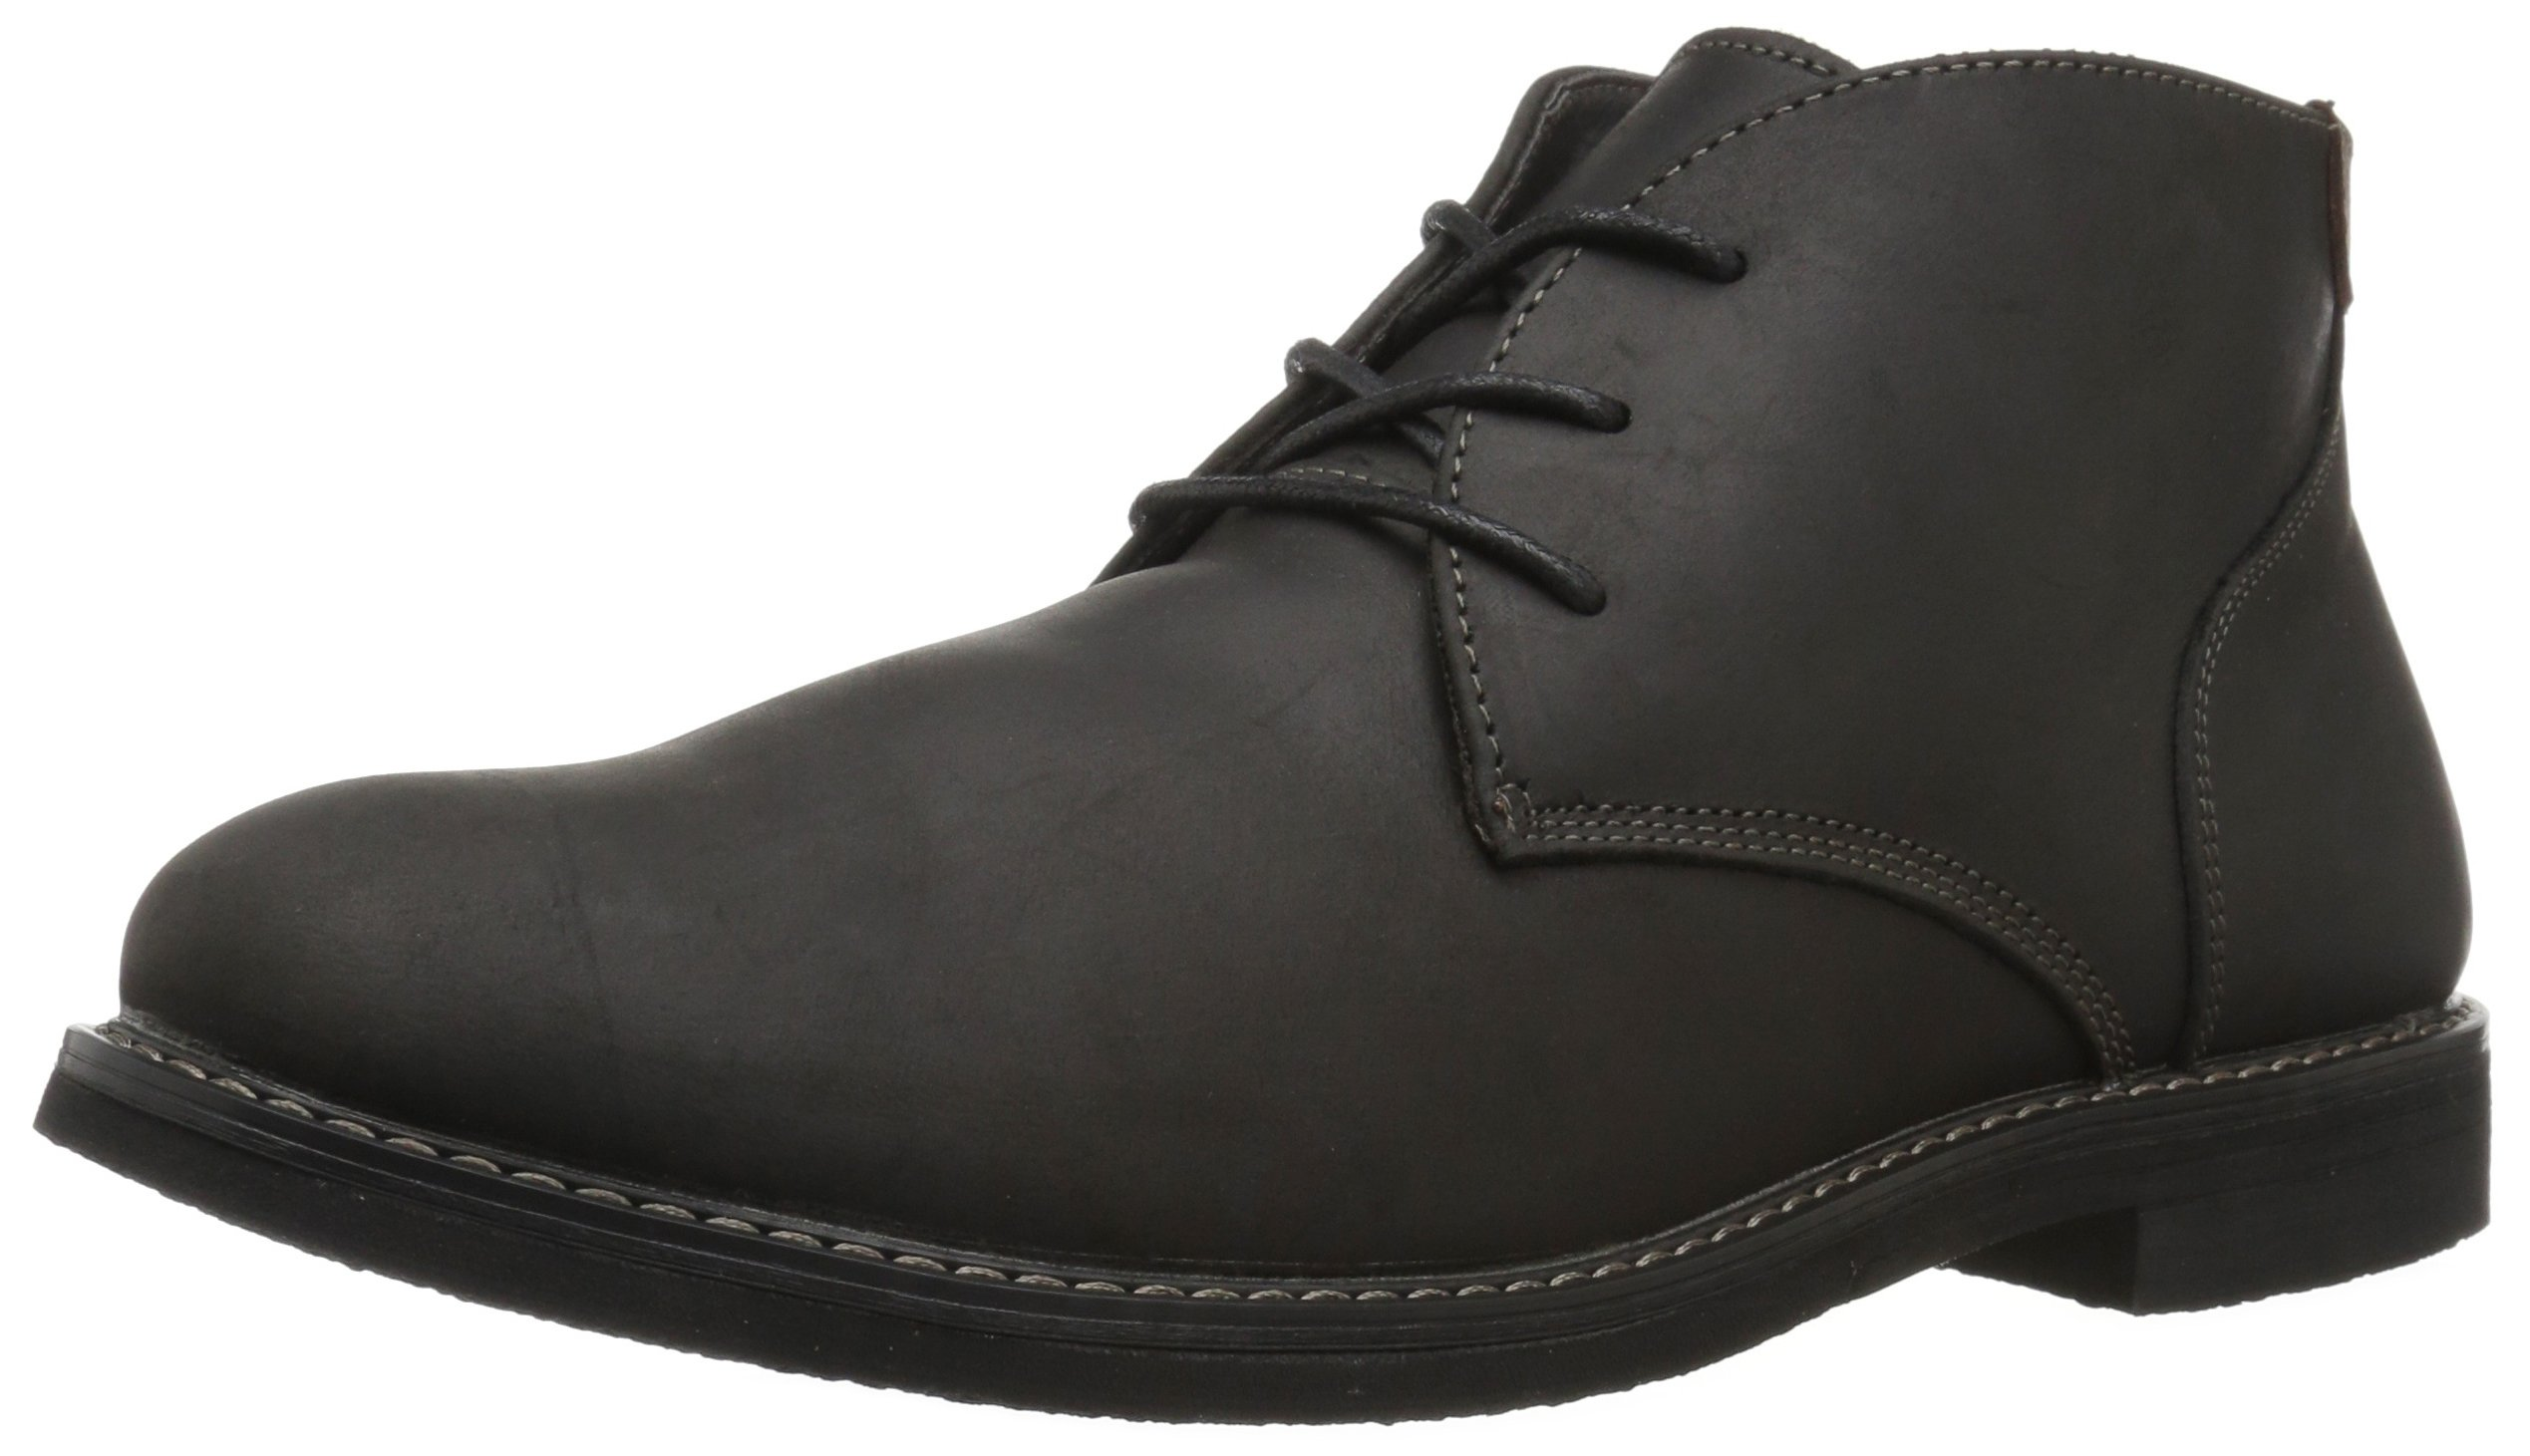 Nunn Bush Men's Lancaster Chukka Boot, Black, 11.5 M US by Nunn Bush